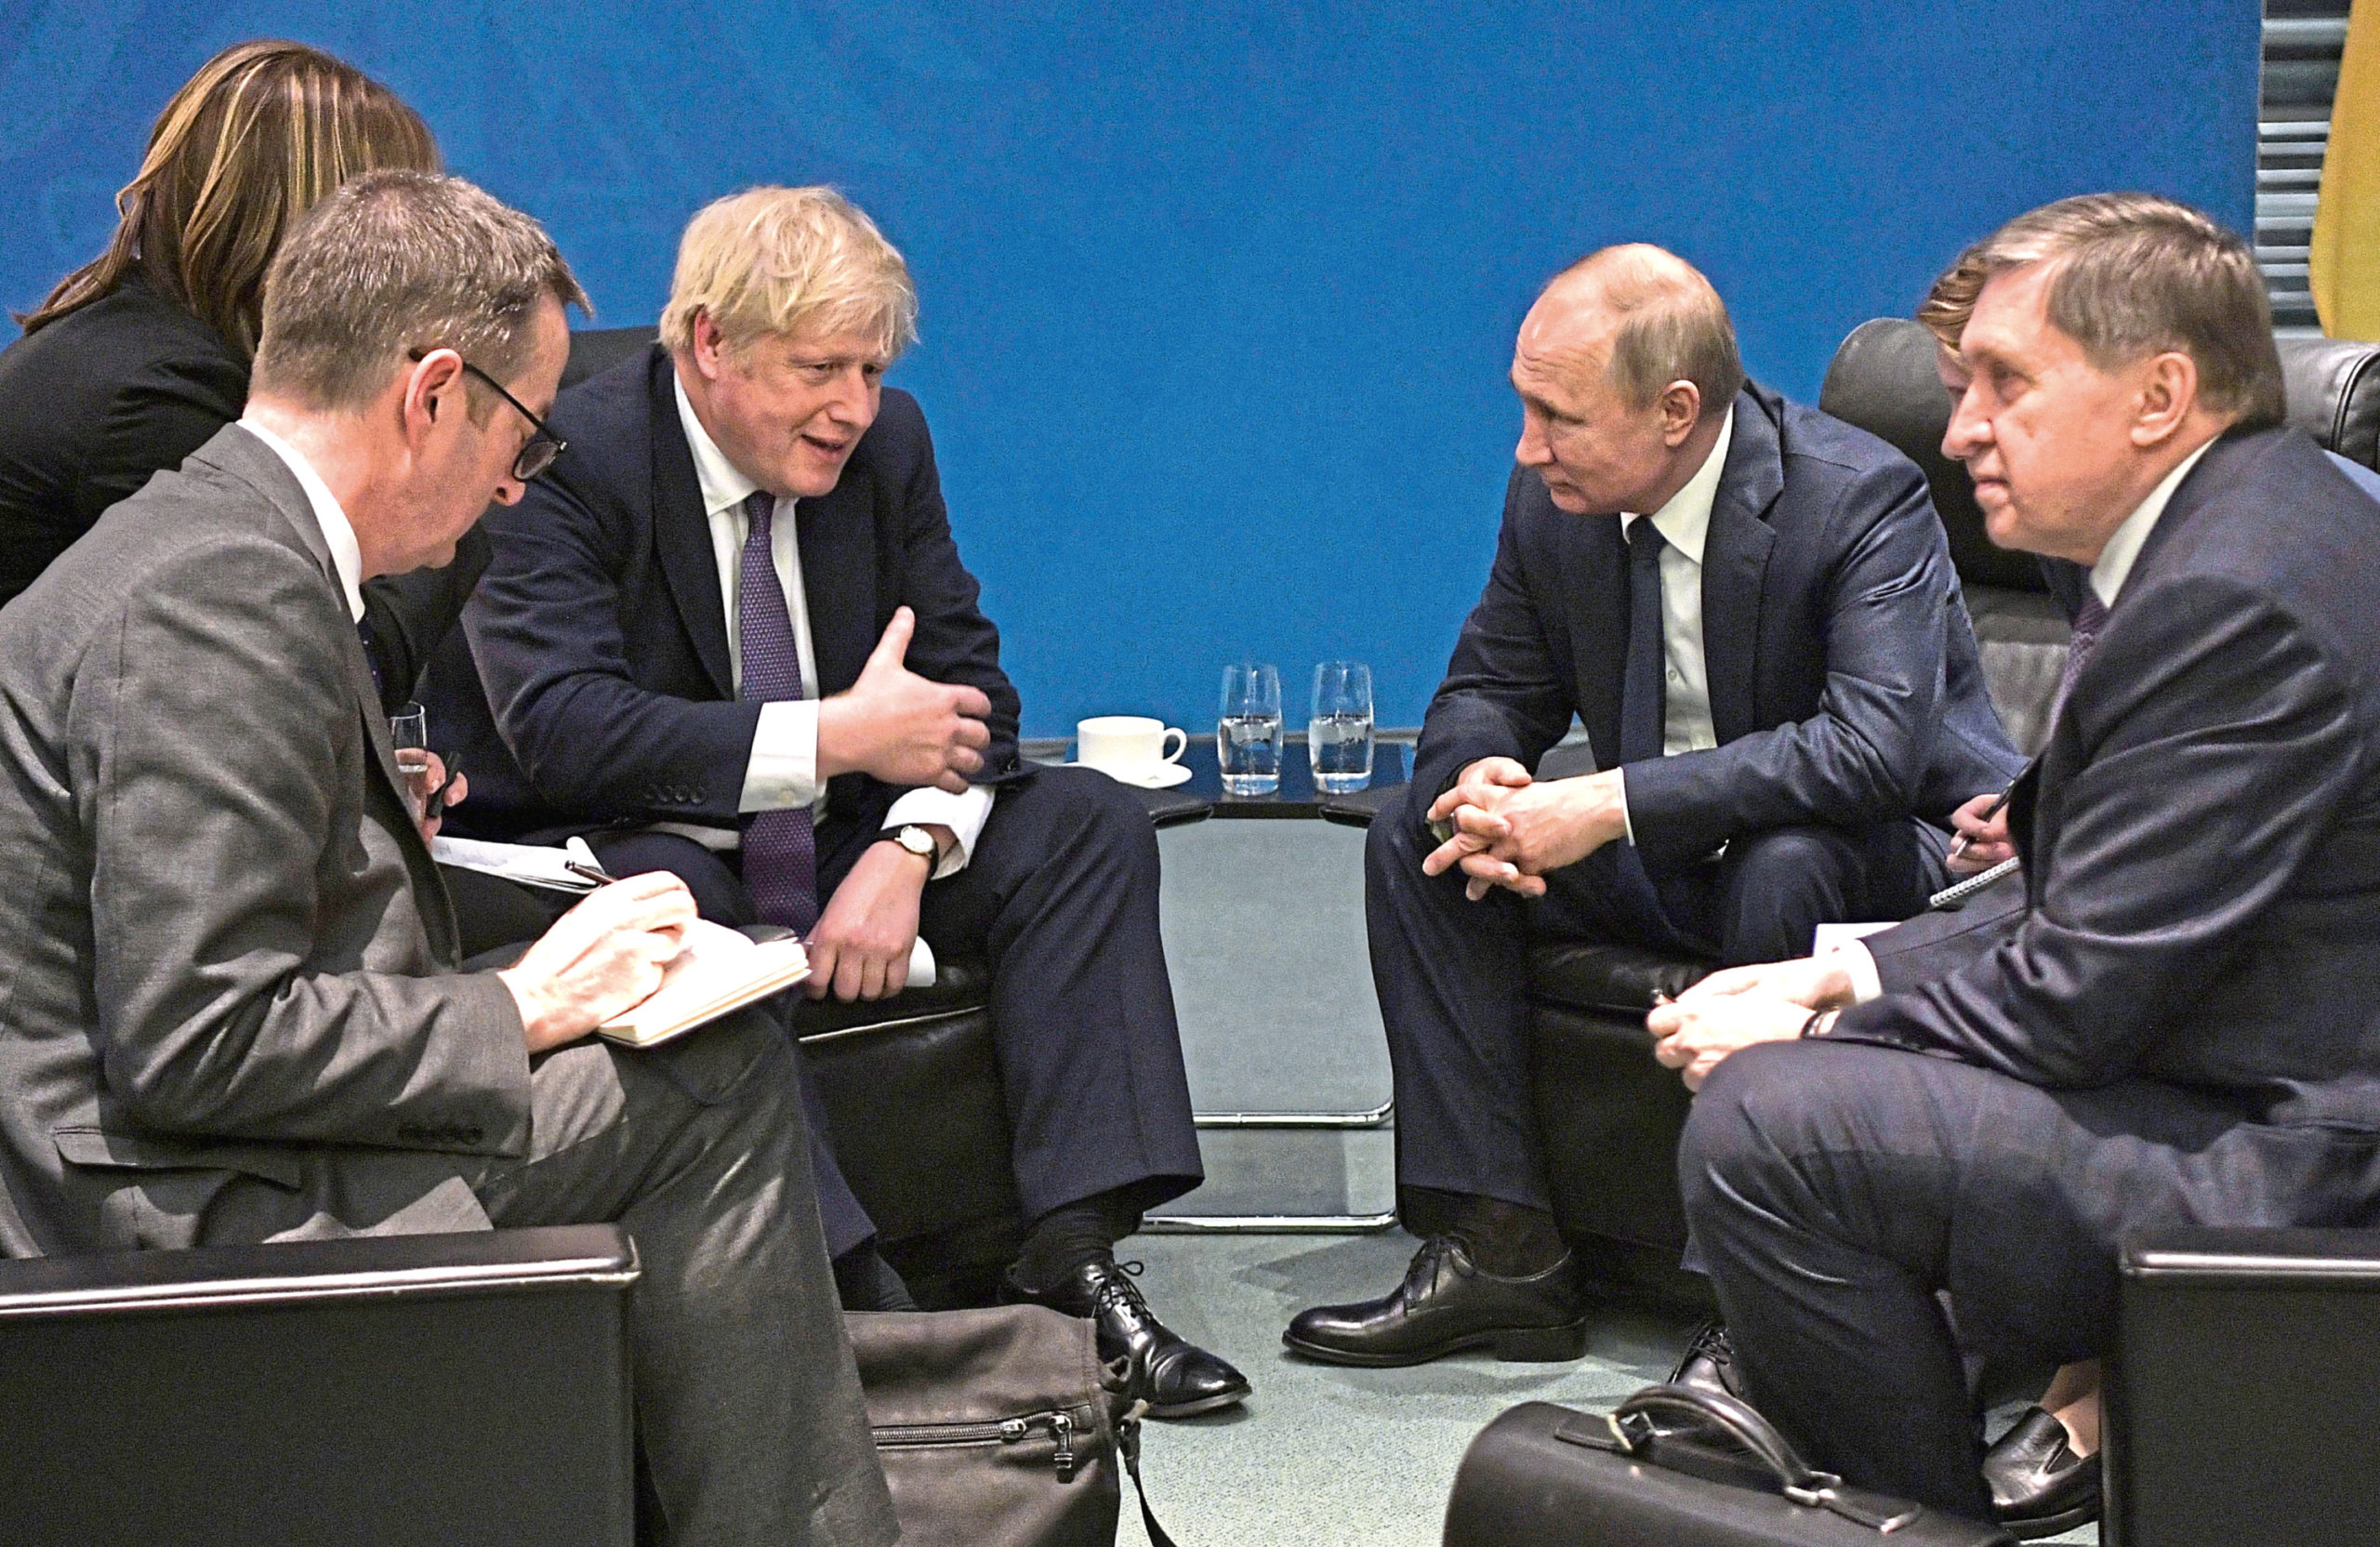 Boris Johnson (third left) speaks to Russian President Vladimir Putin (second right) during the International Libya Conference in Berlin, Germany, in January 2020.